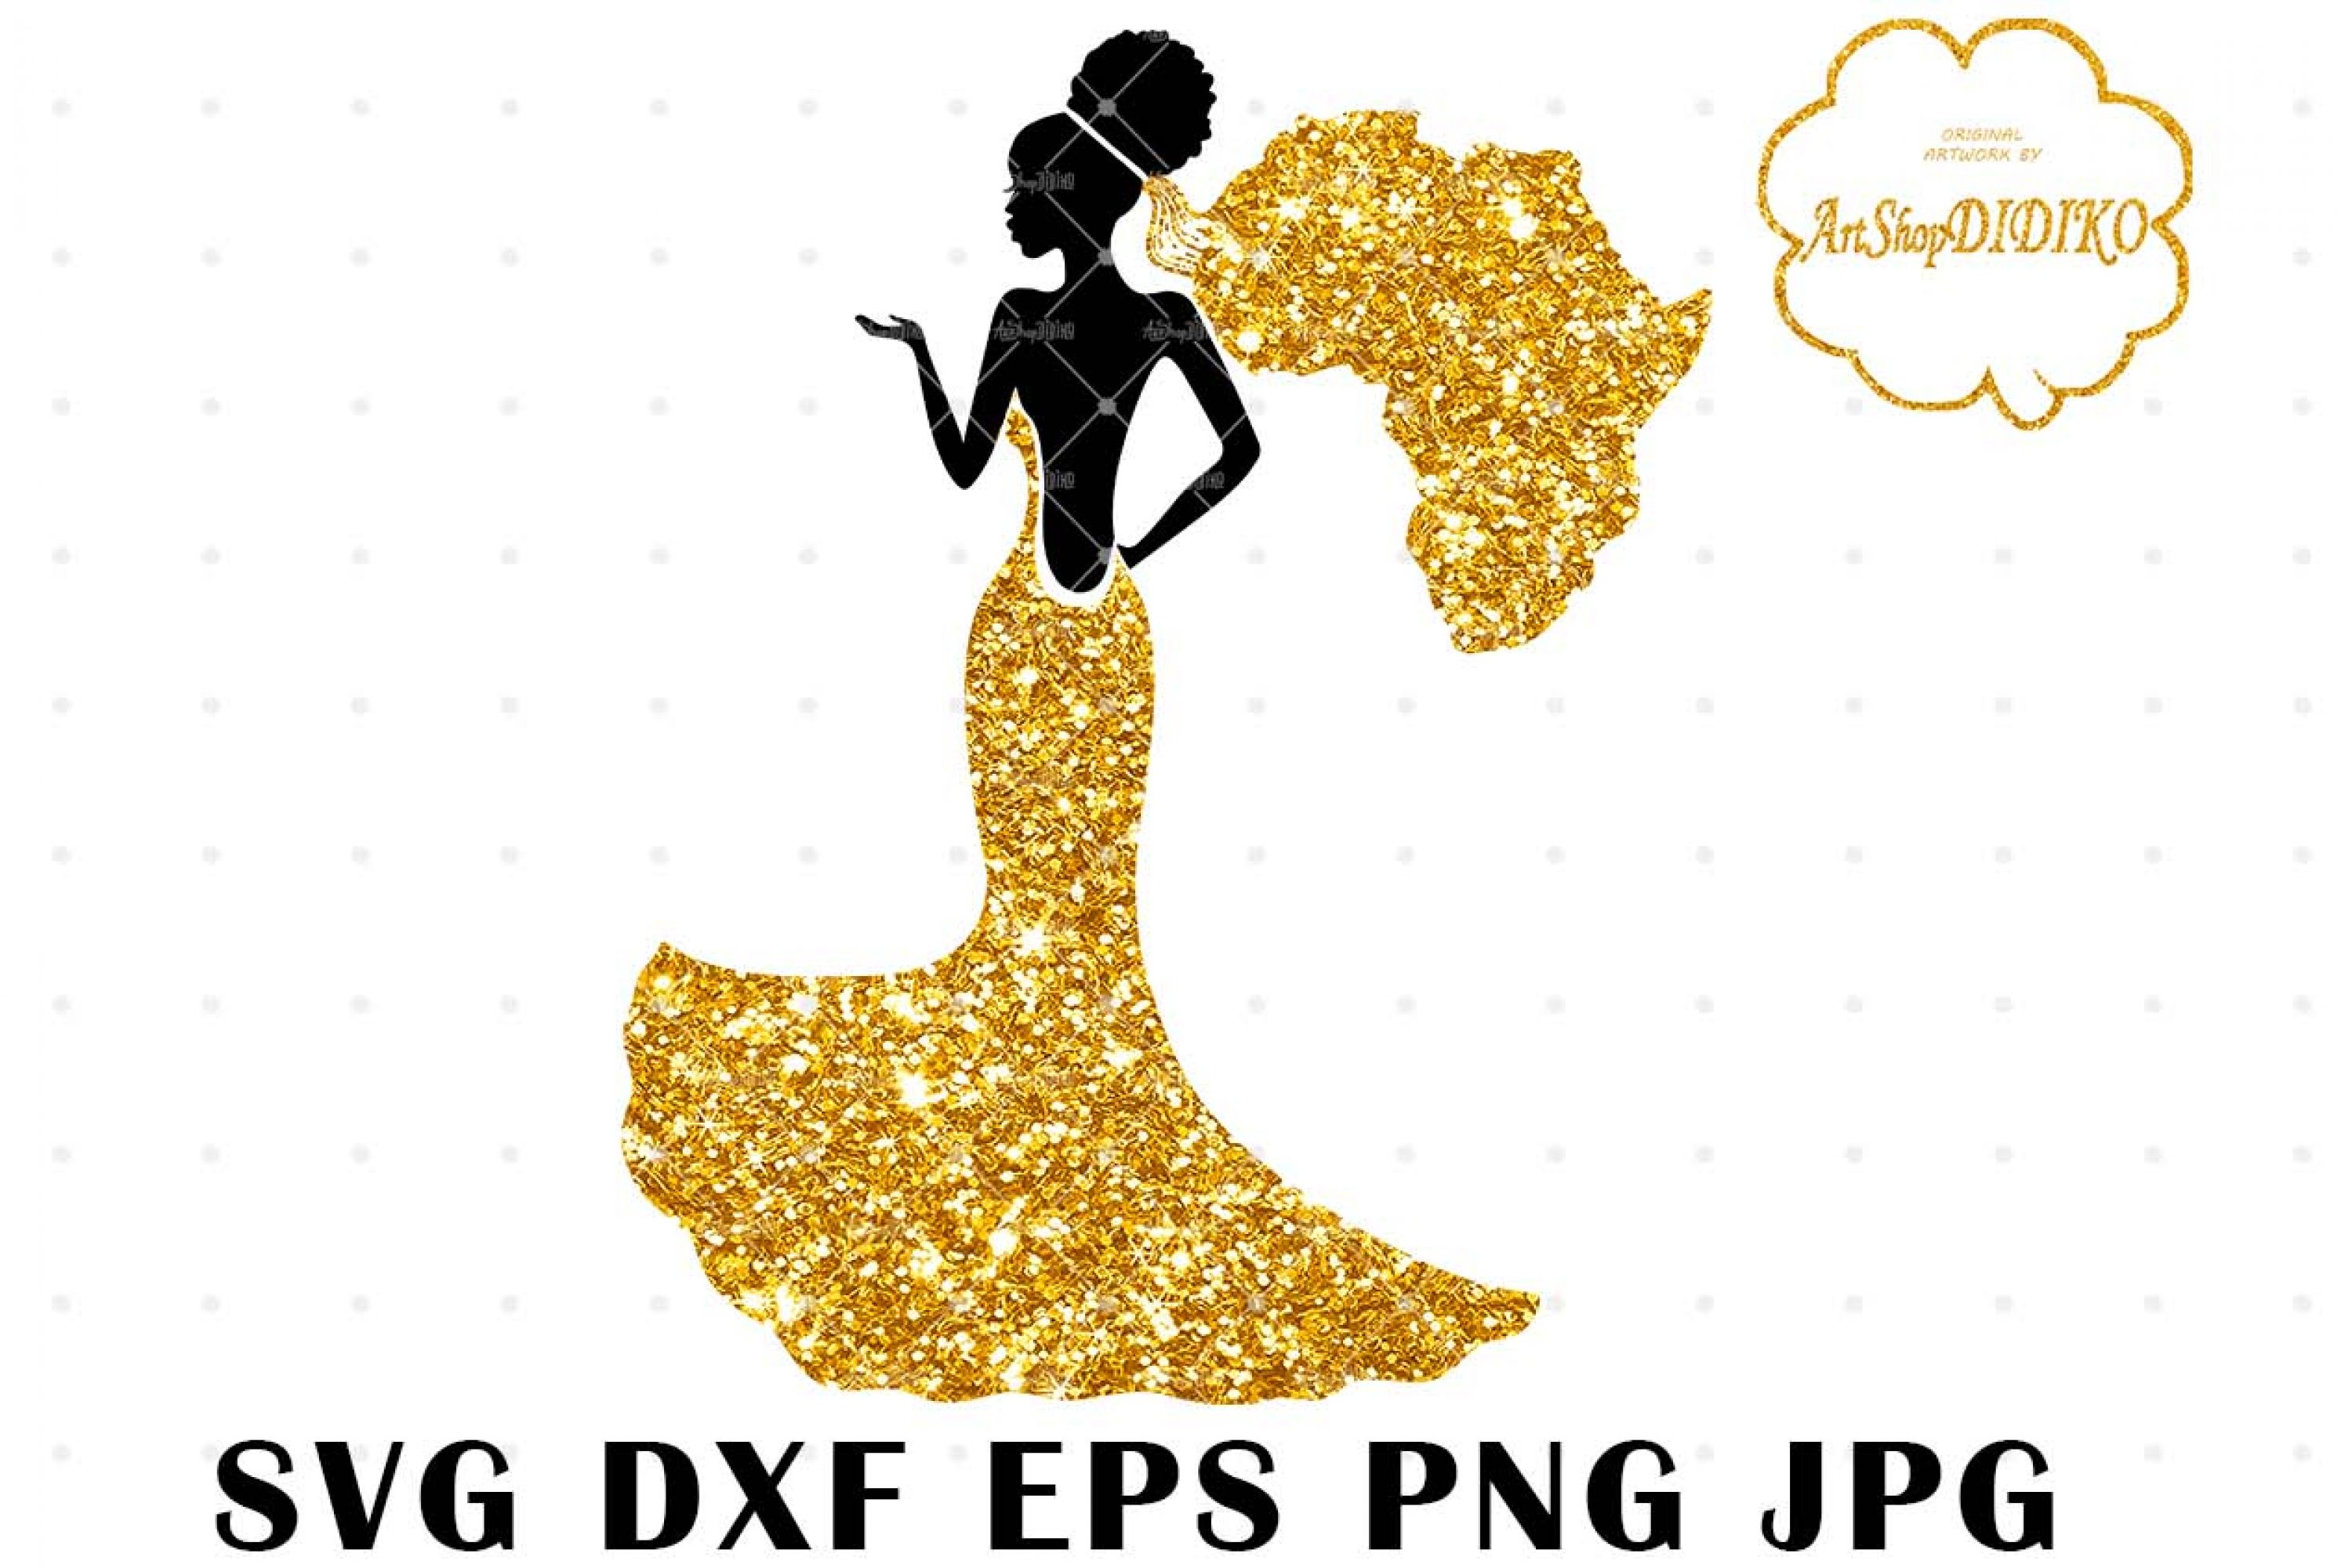 Afro Woman Bride SVG, African American Wedding SVG, Africa SVG, DXF, EPS, PNG, JPG, Silhouette Files, Cricut Cut Files